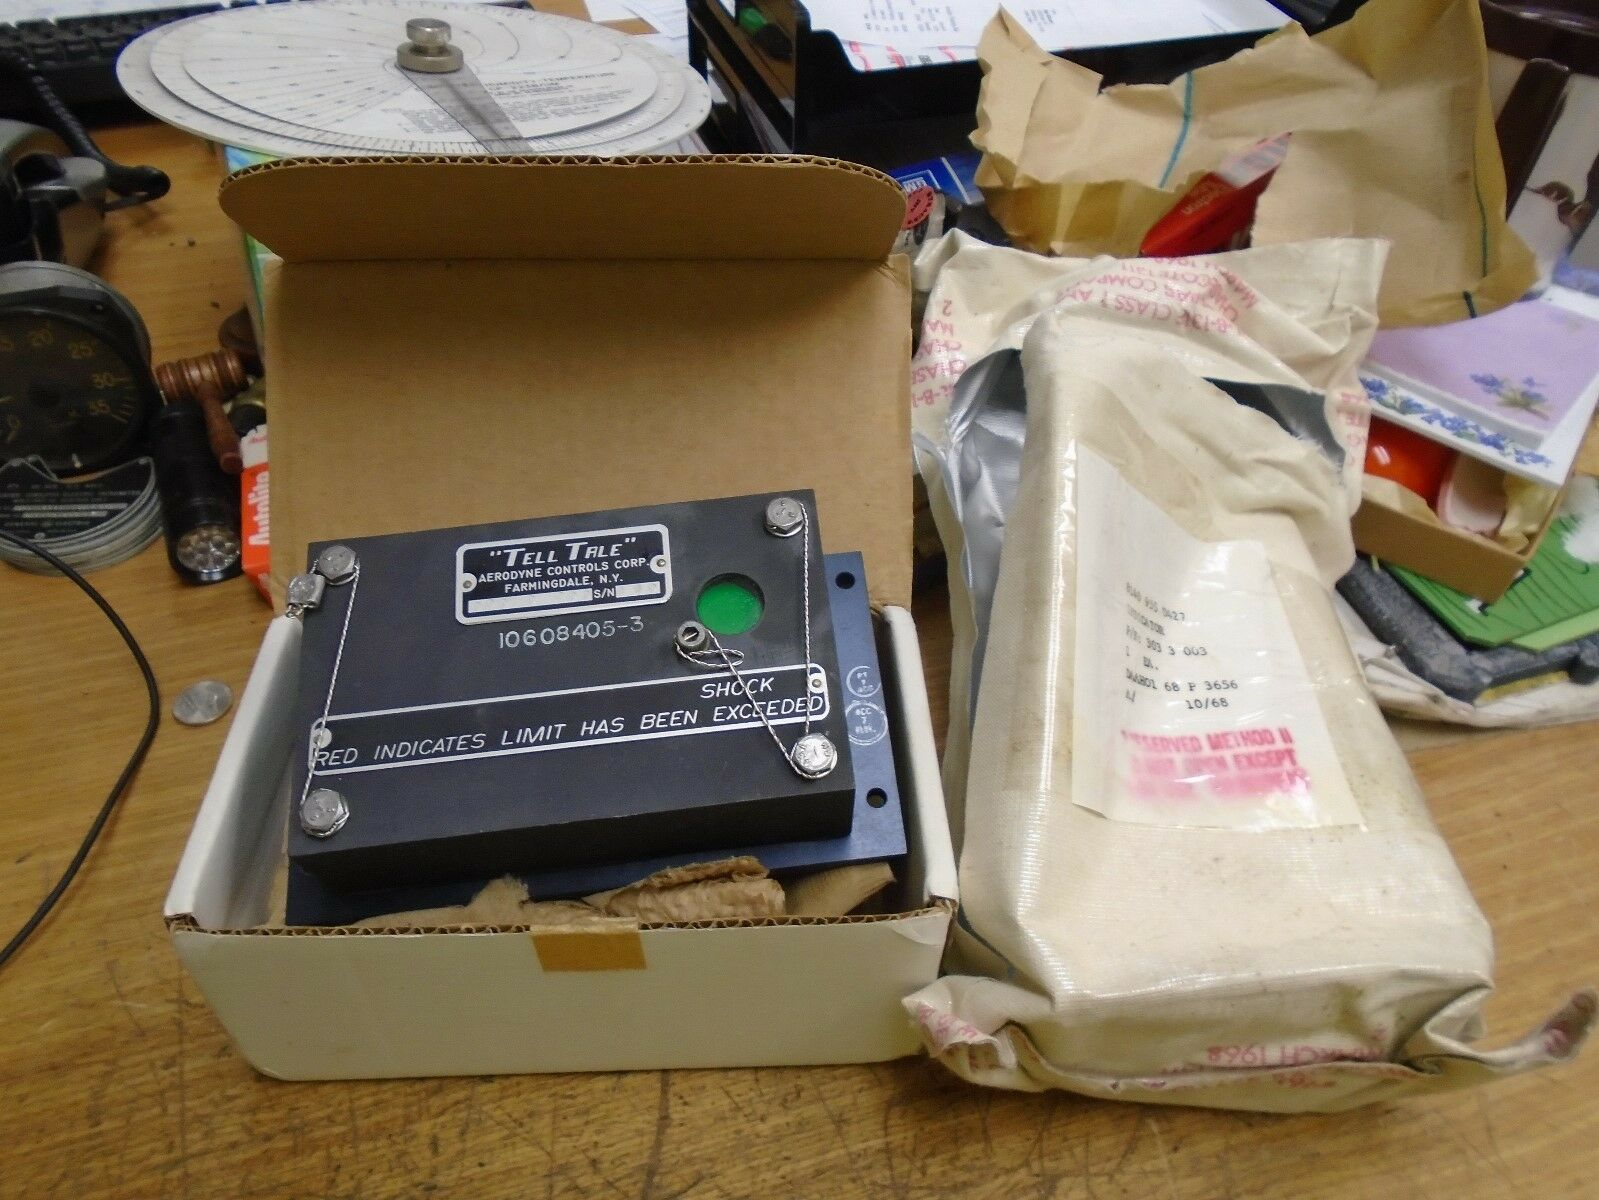 """NOS new old stock Aerodyne Control """"Tell Tale"""" Aircraft shock limit indicator"""